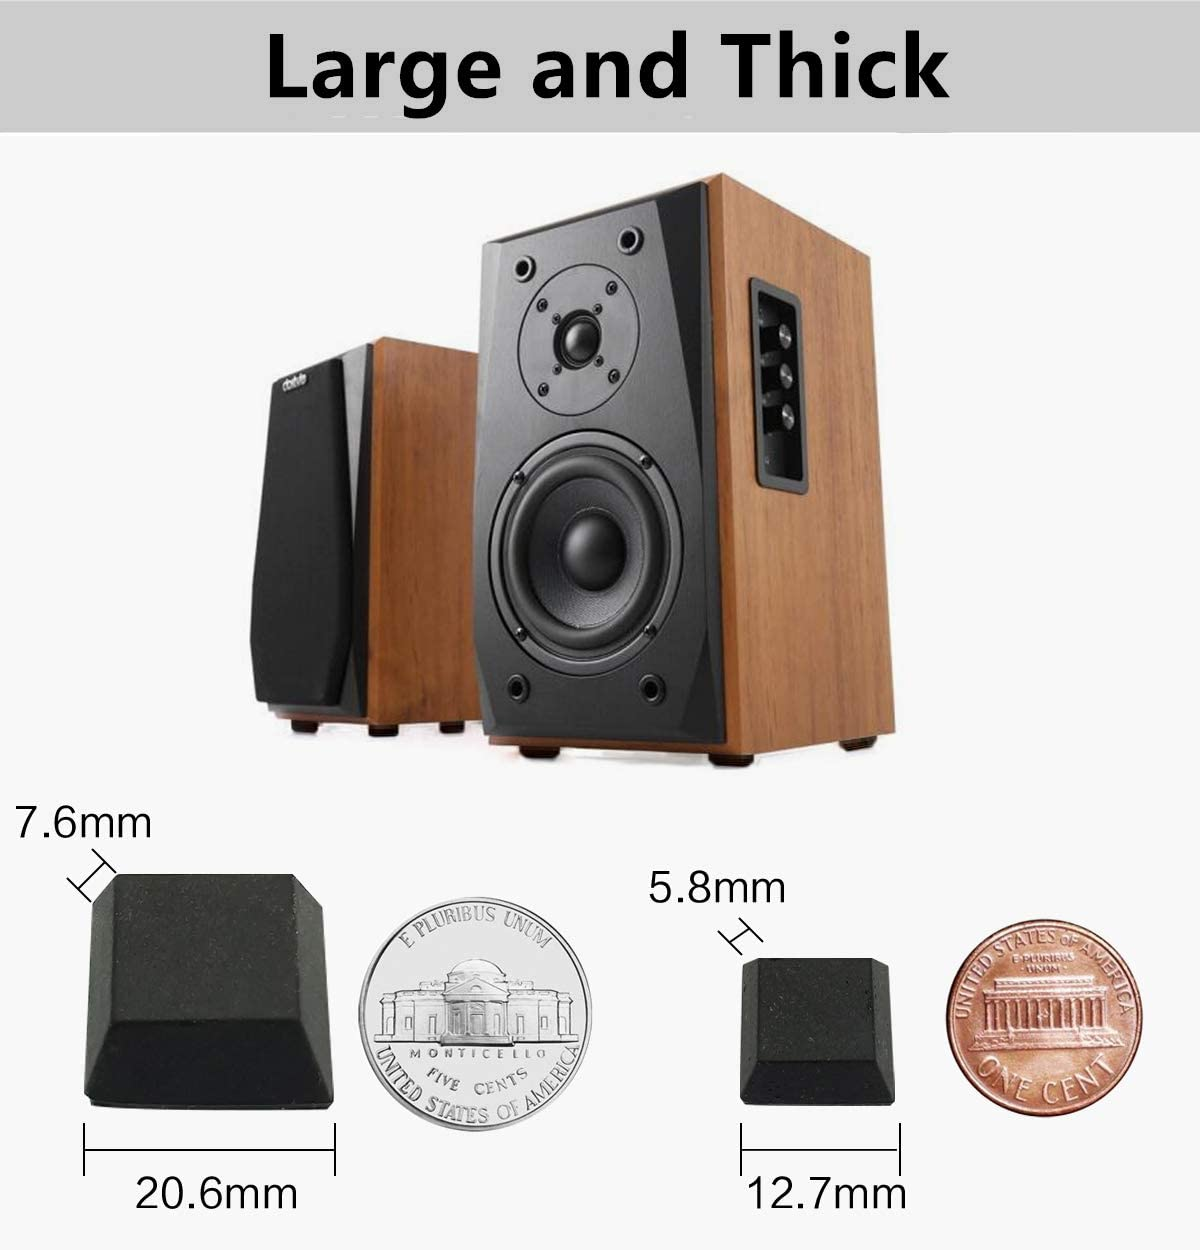 20 Pieces Appliances Audio Equipment Electronics Black Tall Square Adhesive Rubber Bumper Pads Furniture Rubber Feet for Speakers Made in USA